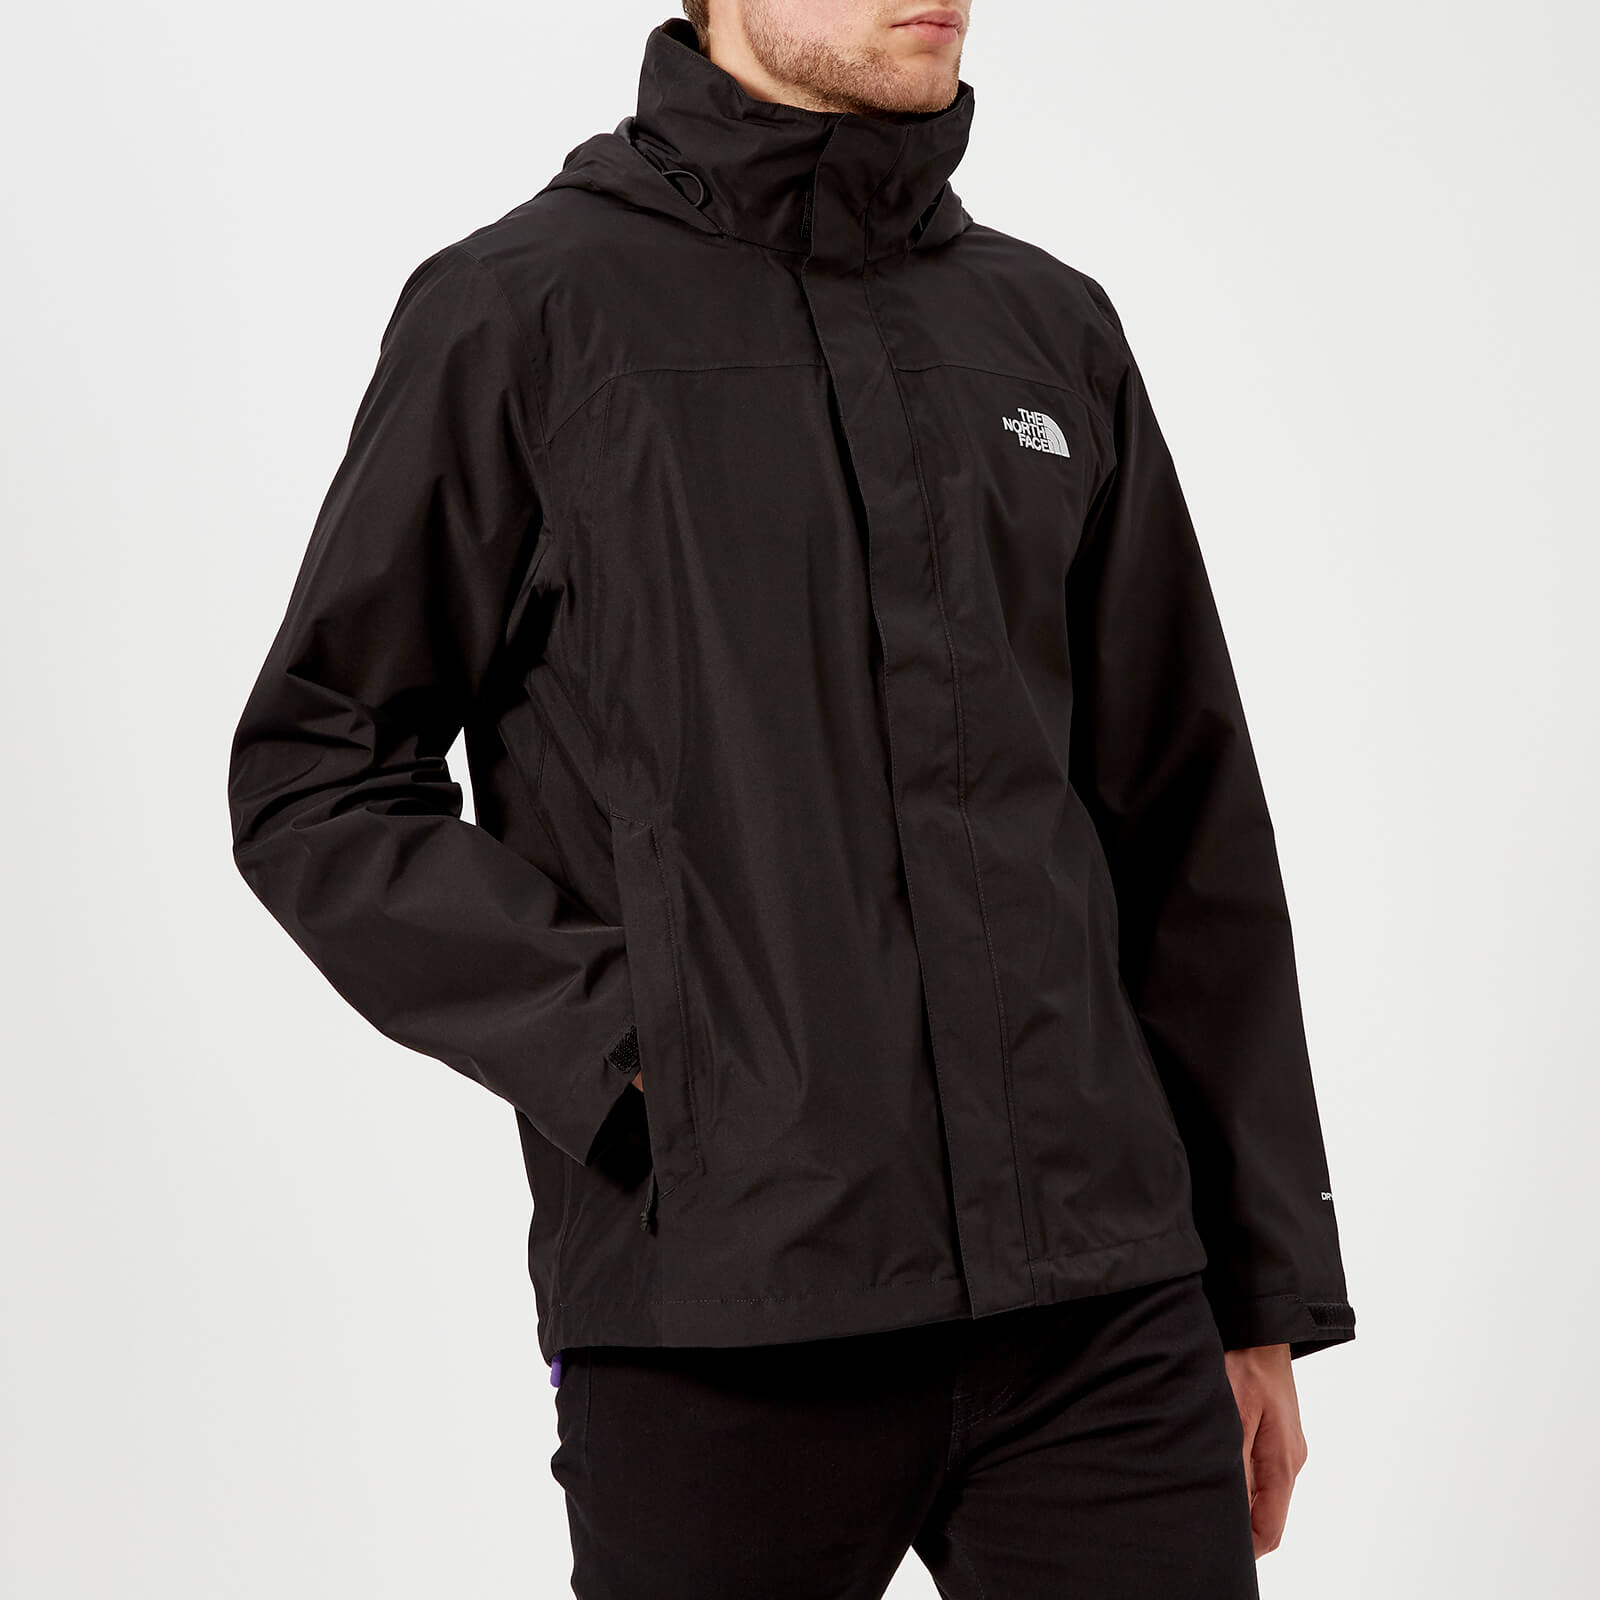 486685138 The North Face Men's Sangro Jacket - TNF Black - Free UK Delivery over £50